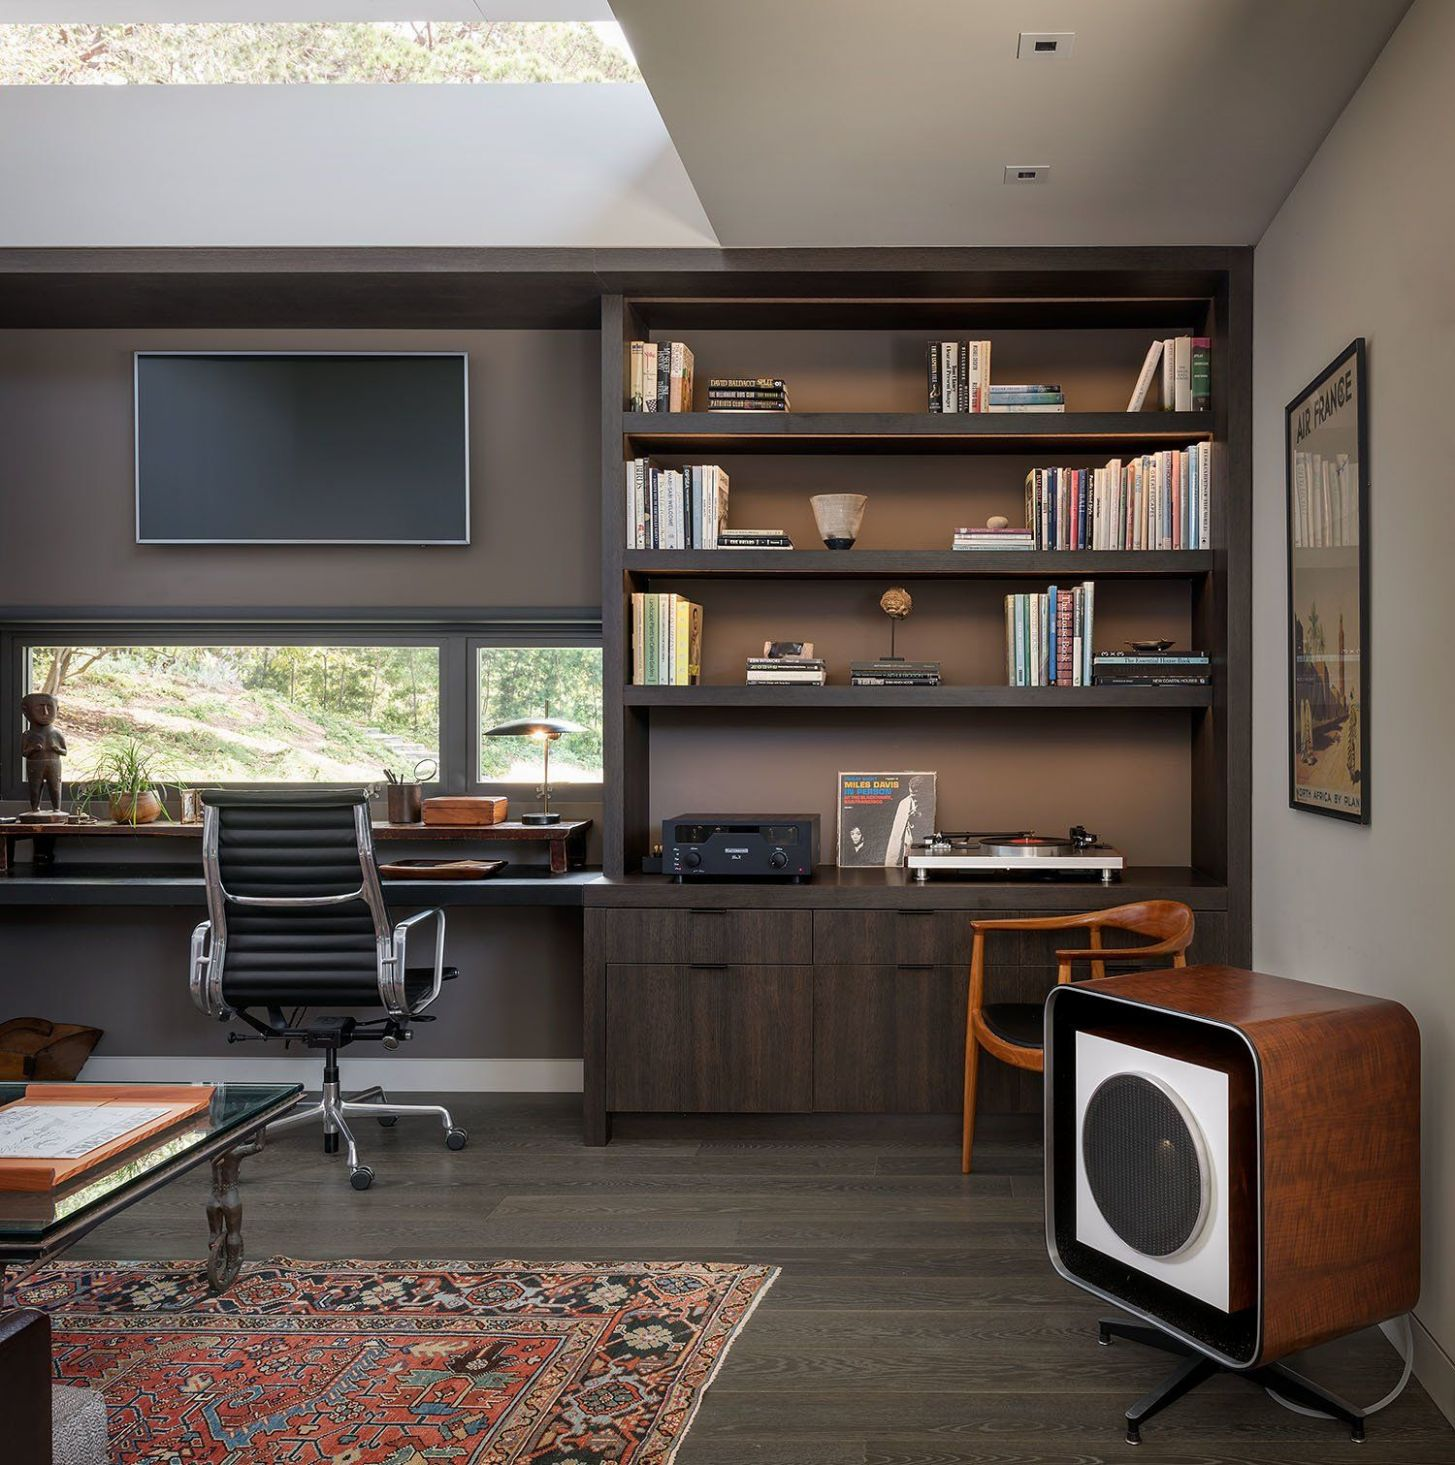 9 Home Office Designs & Decorating Ideas | Home office design ..